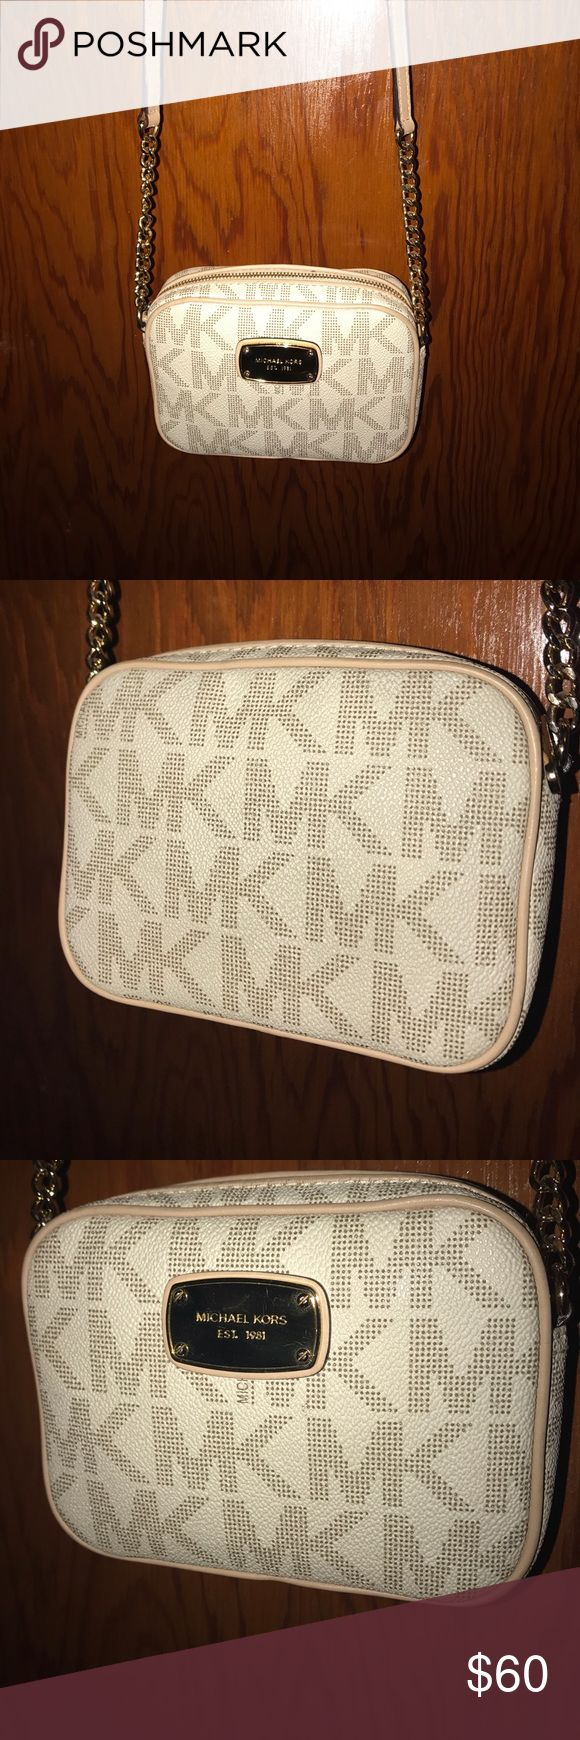 Michael Kors Hipster Purse Ivory leather bag, tan lining, gold accents Michael Kors Bags Crossbody Bags